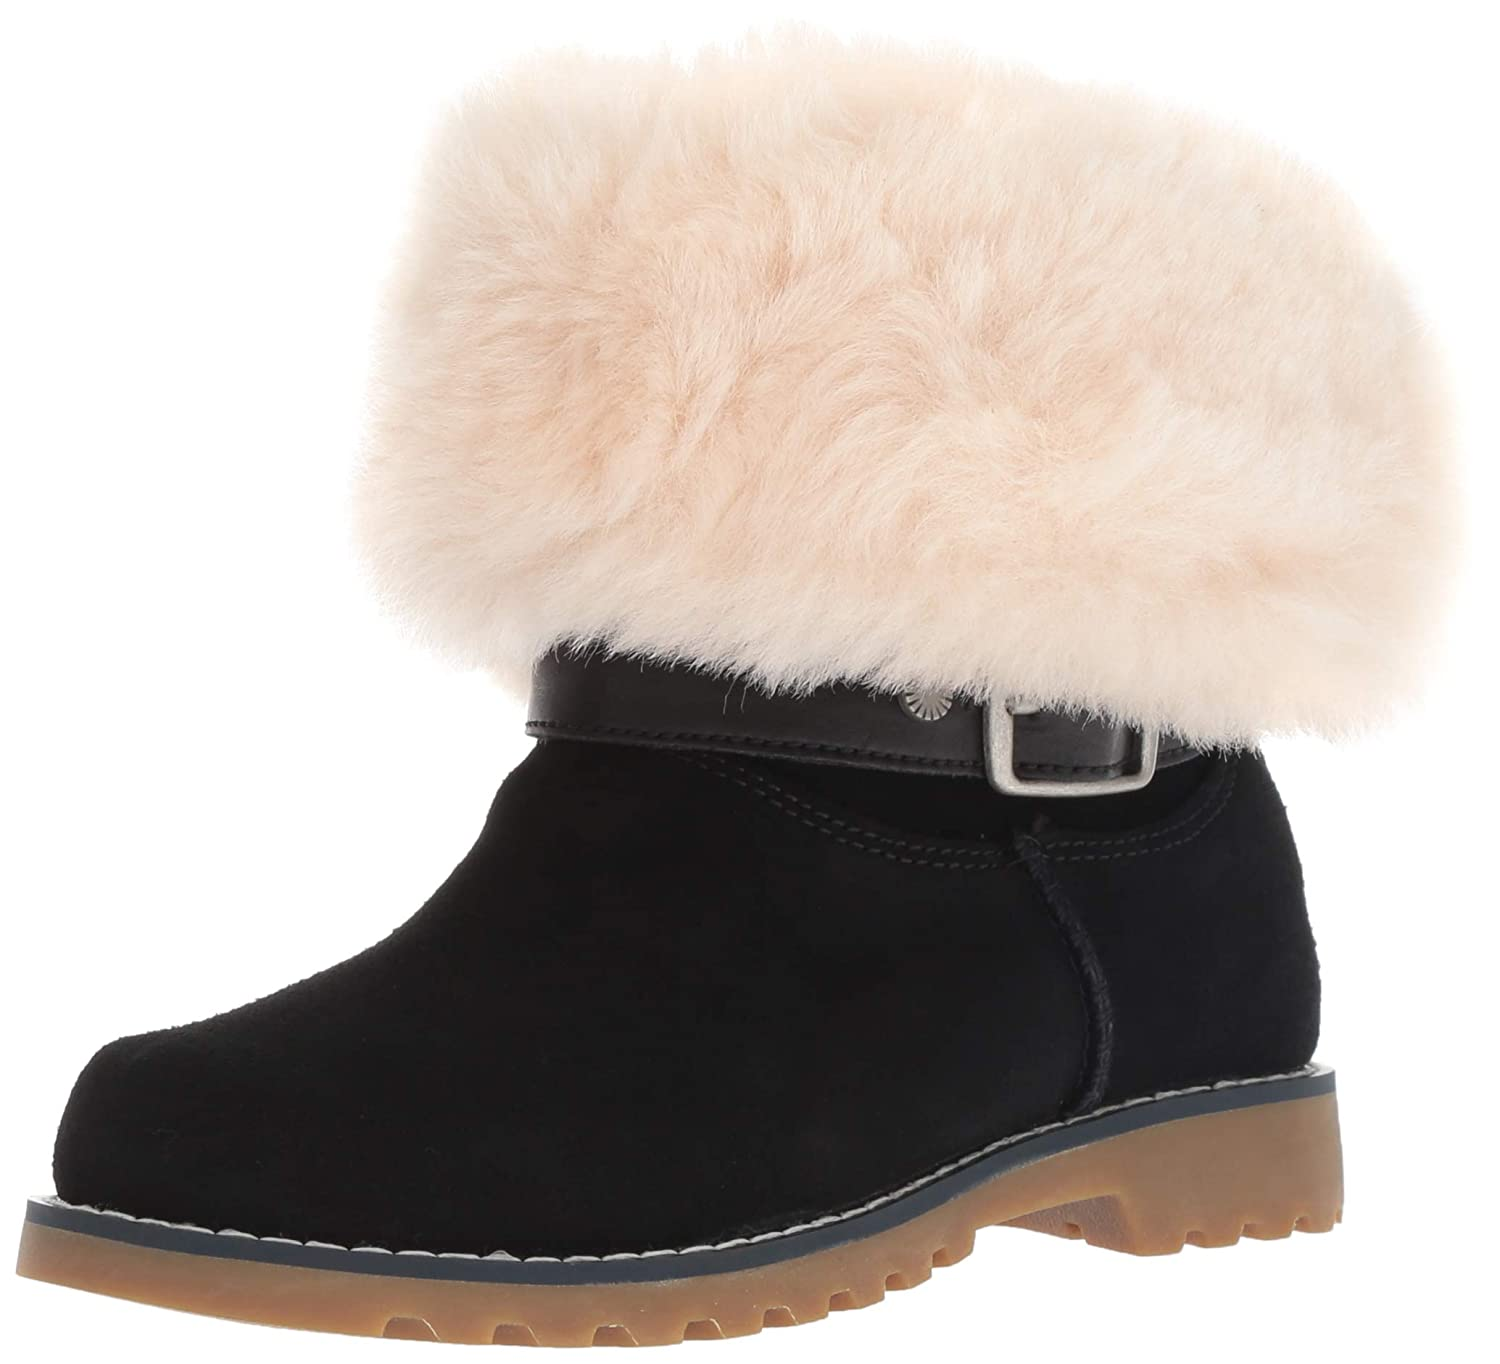 qualità superiore 09a02 0659f UGG Kids' K Nessa Fashion Boot